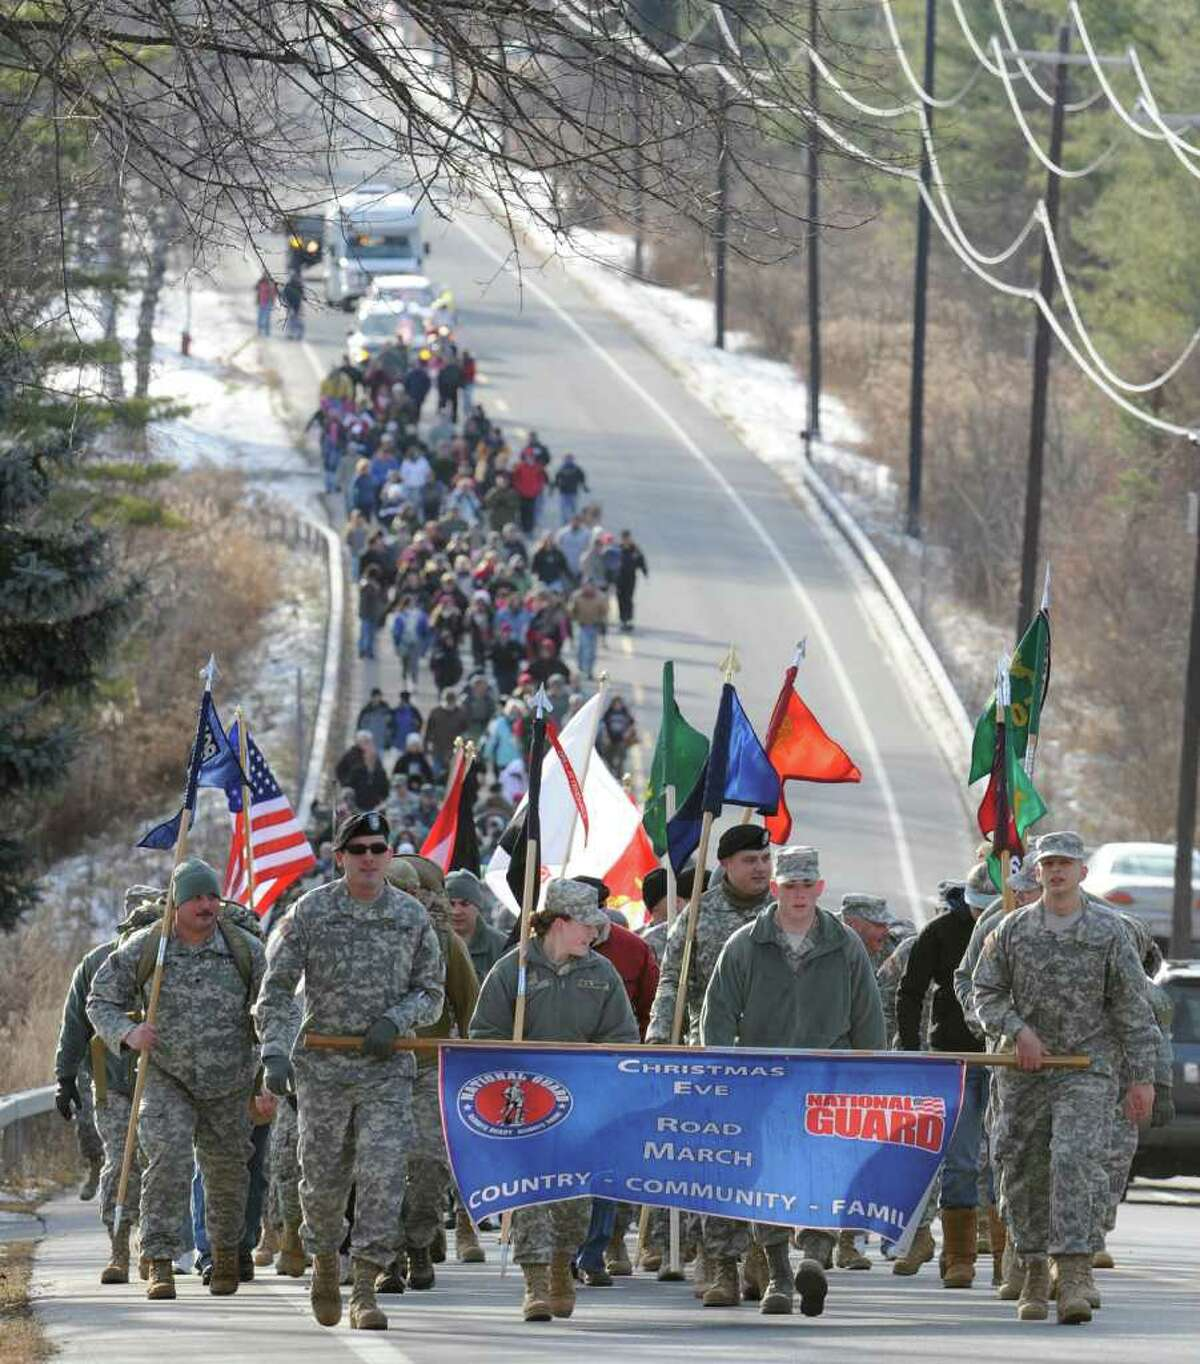 Hundreds of marchers leave the National Guard Armory in Queensbury for the annual march to support the men and women who are away from their families during holidays on December 24, 2010. (Skip Dickstein / Times Union)